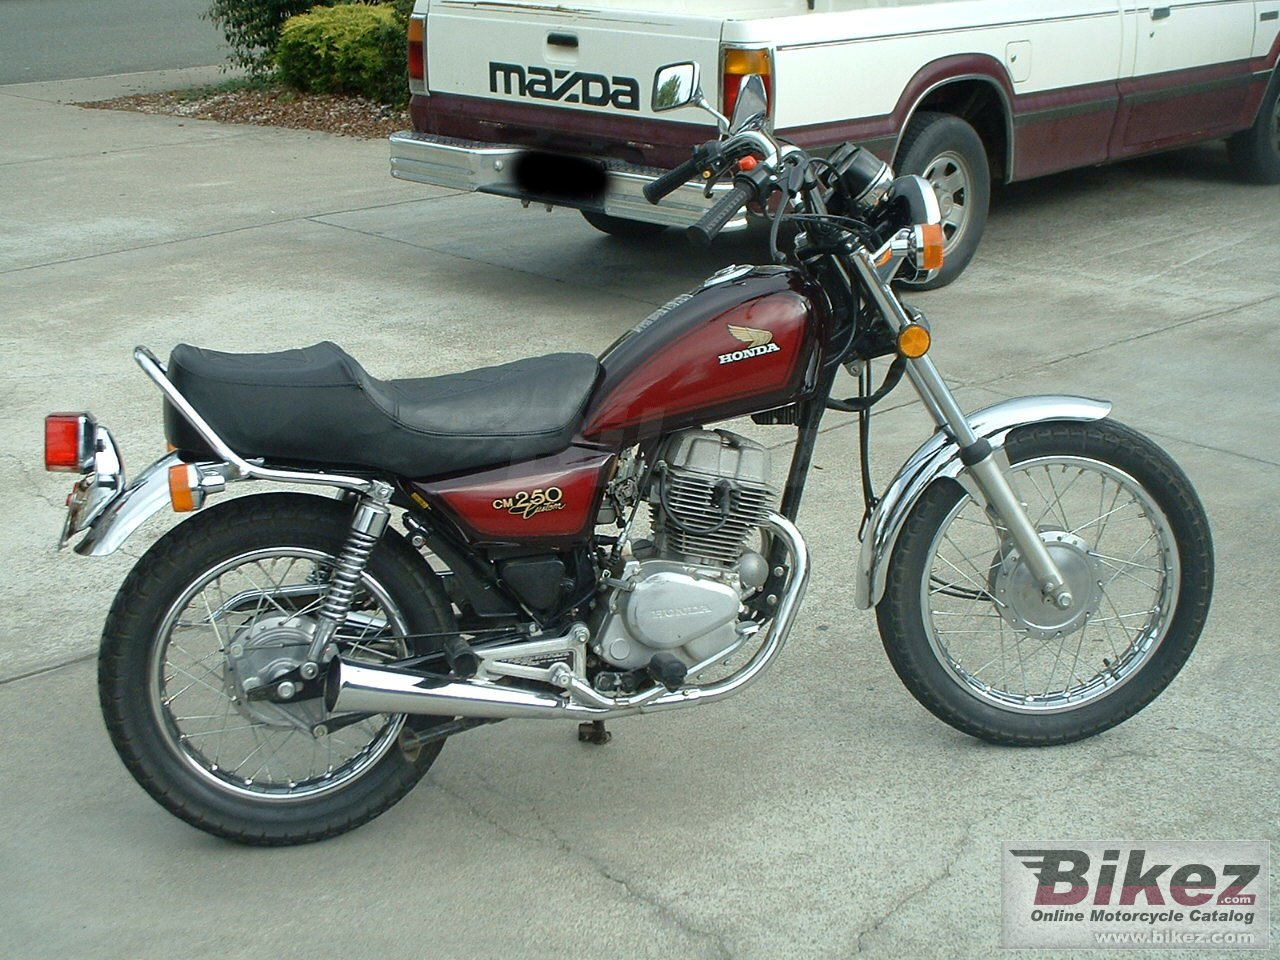 Big  82- Honda Cm250C with 4000 original miles cm 250 c picture and wallpaper from Bikez.com